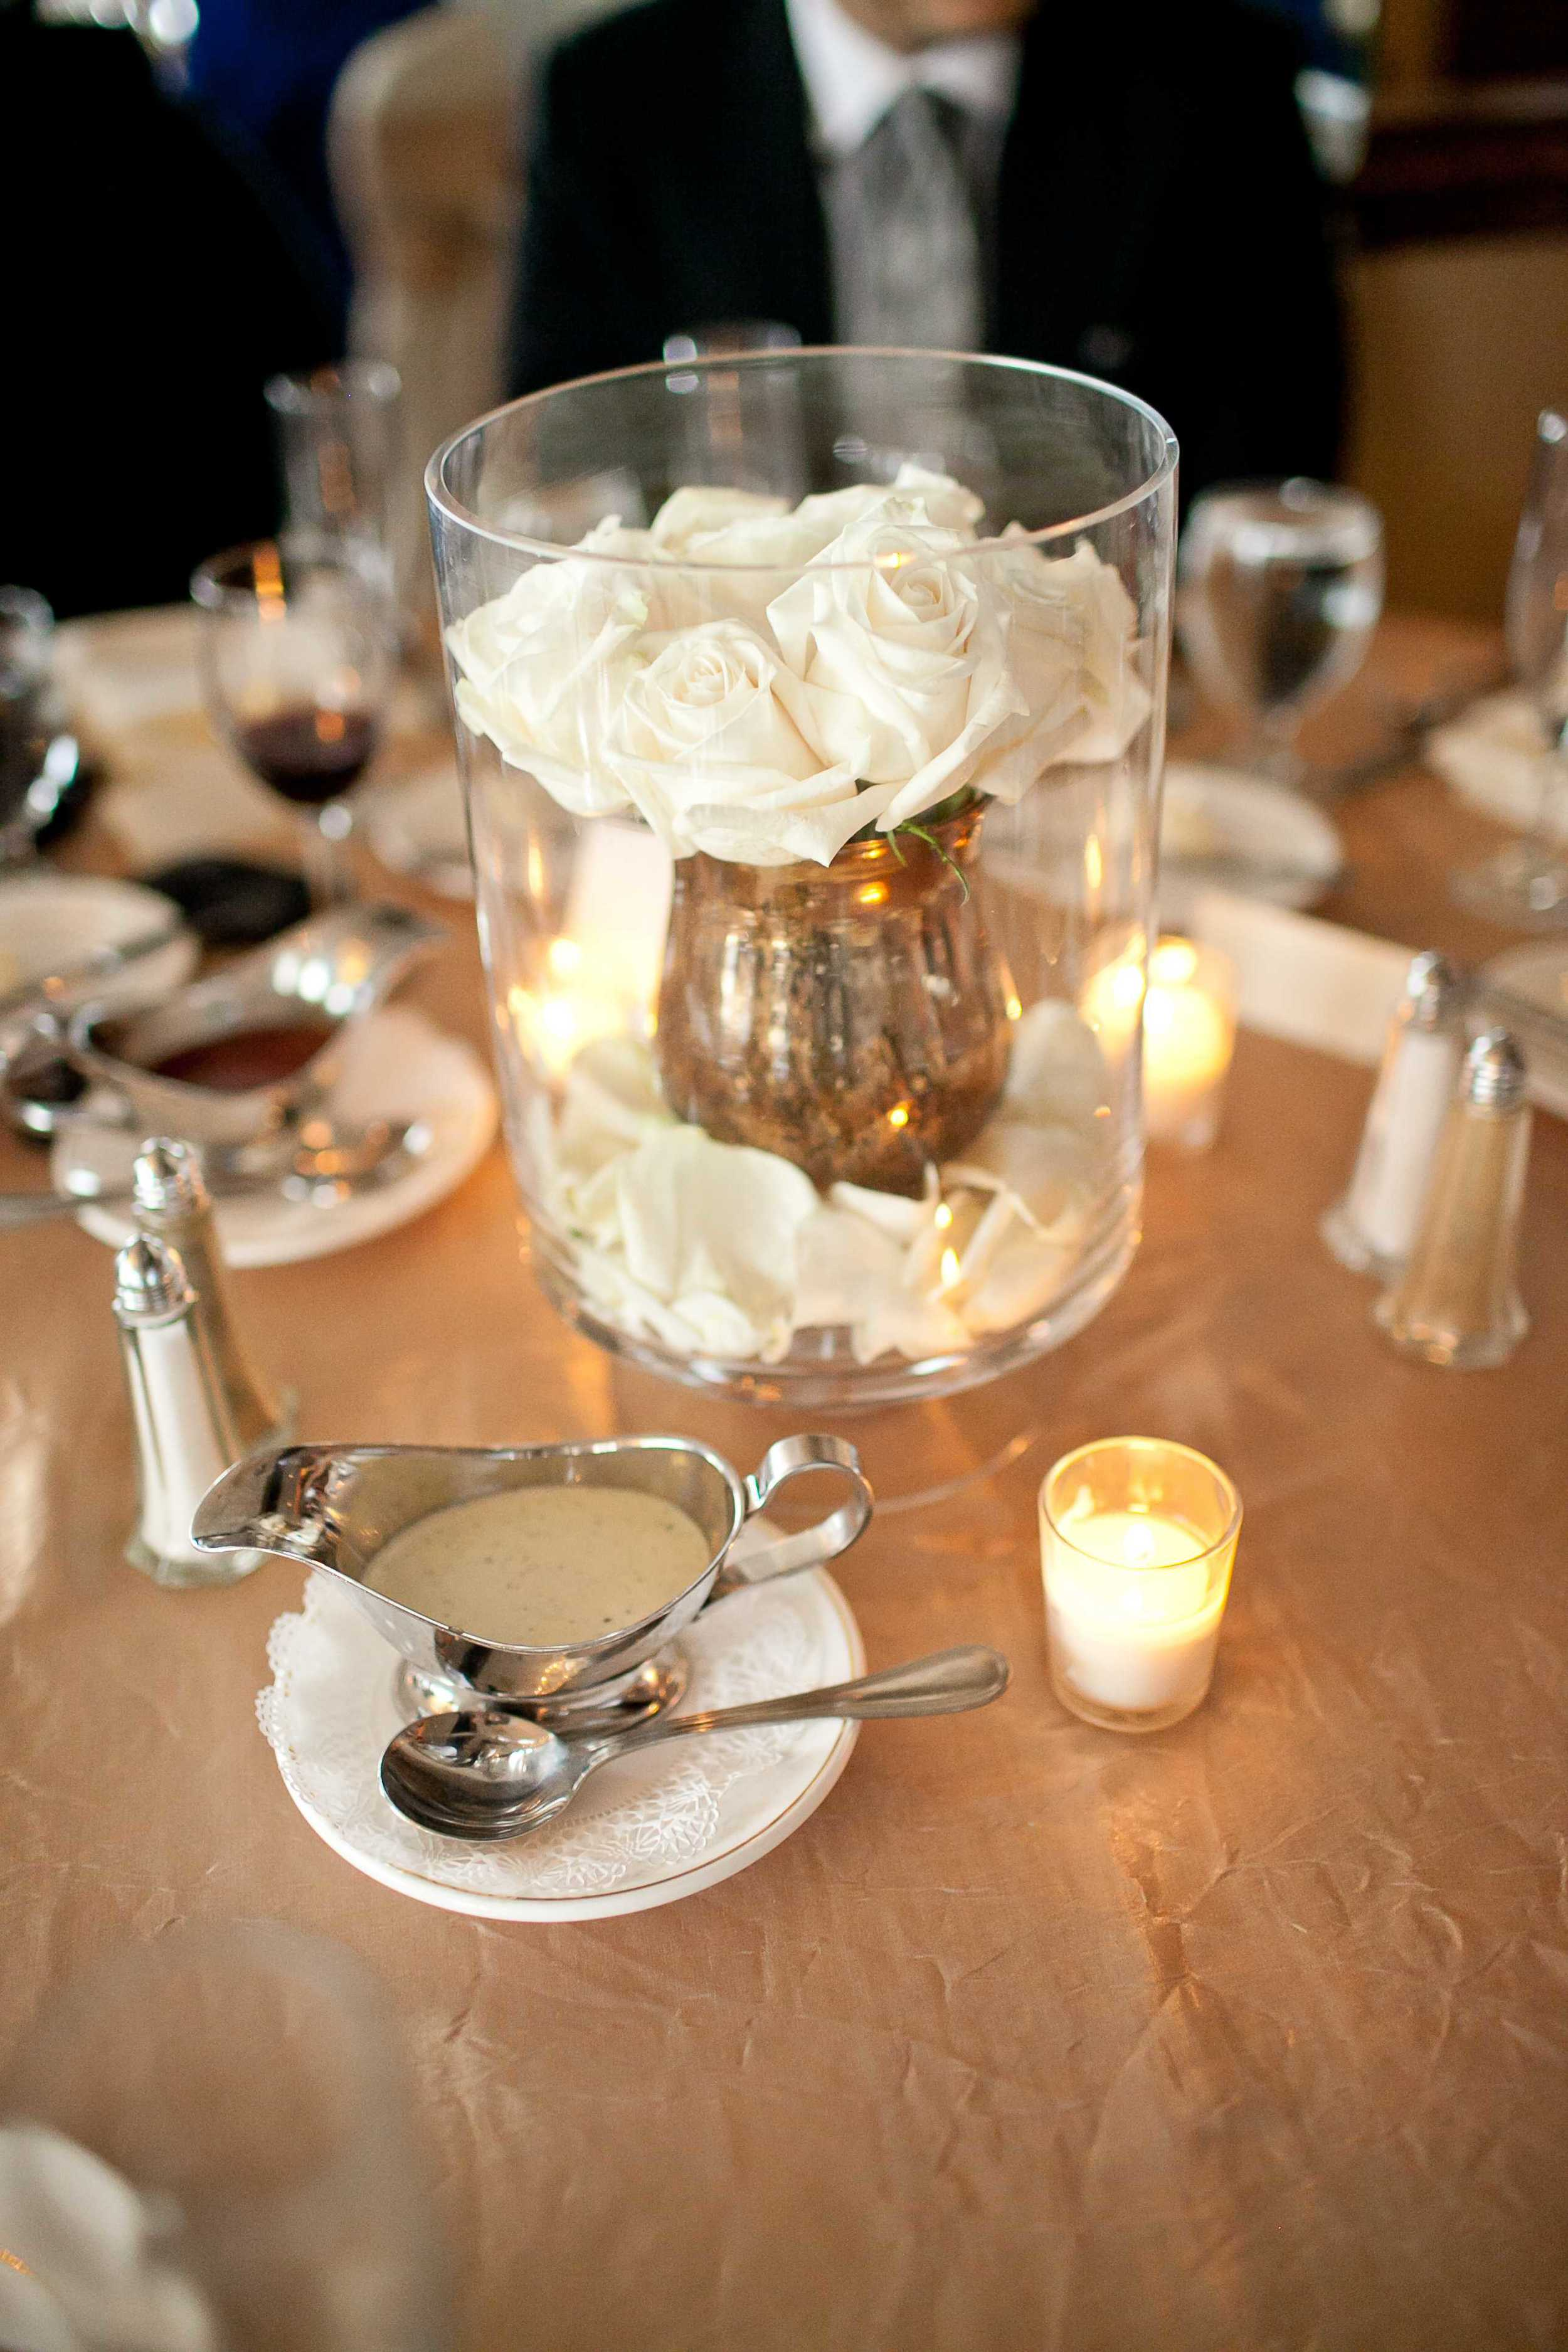 "img src=""httpwww.theparkwayevents.jpg"" alt=""San Francisco Bay Area Wedding Coordinator Centerpiece White Roses Gold Vase"".jpg"